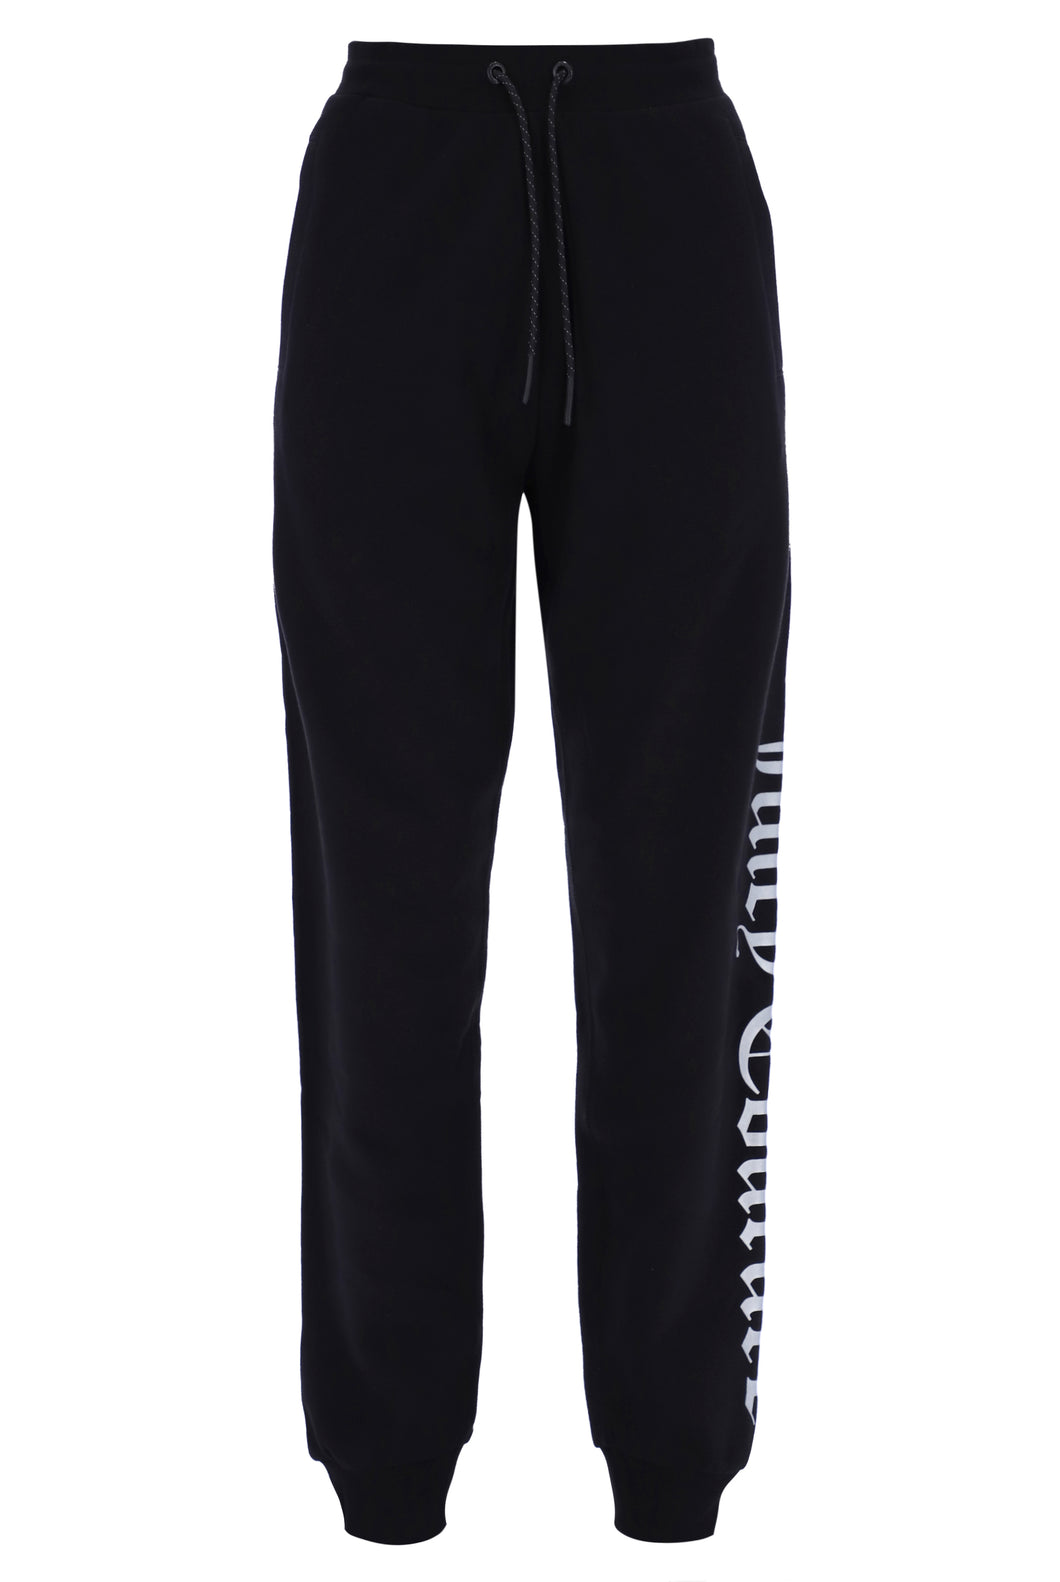 TRACK BOTTOMS WITH LARGE LOGO - BLACK